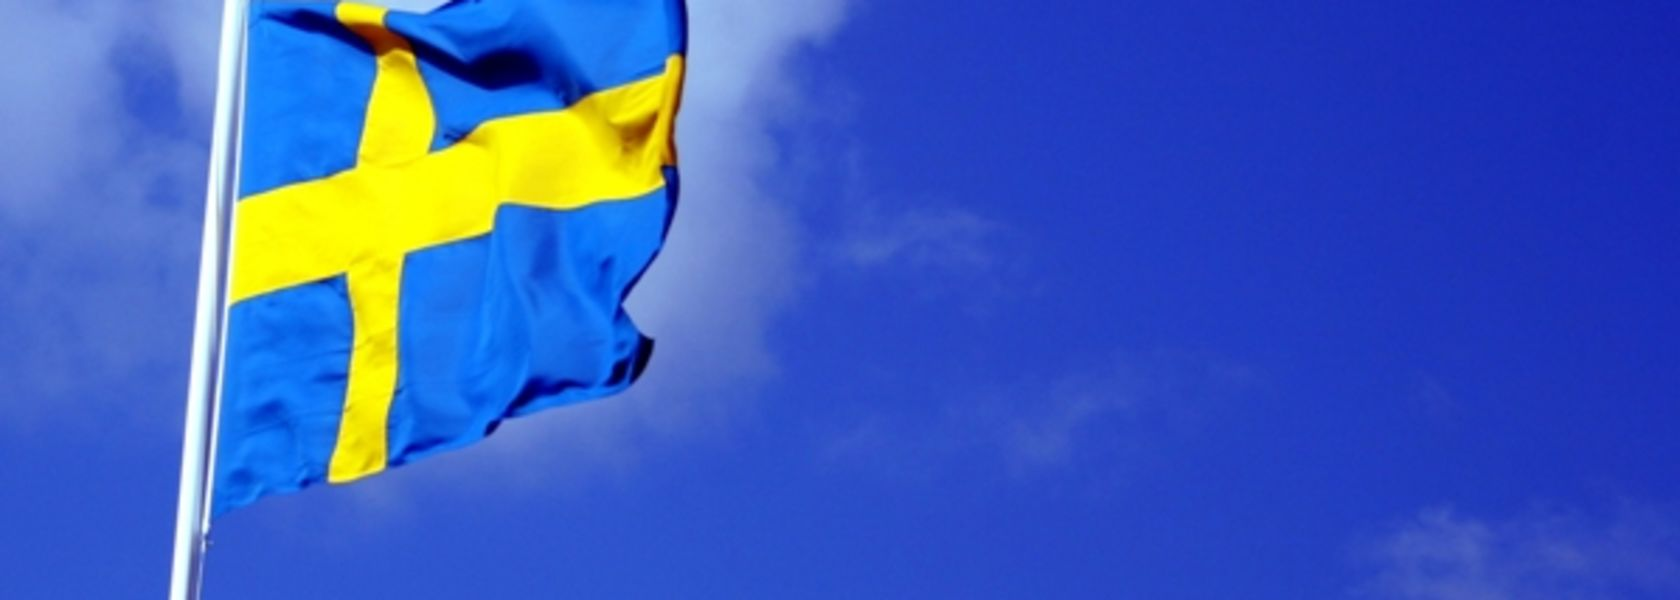 Nordic countries drop coal plant financing